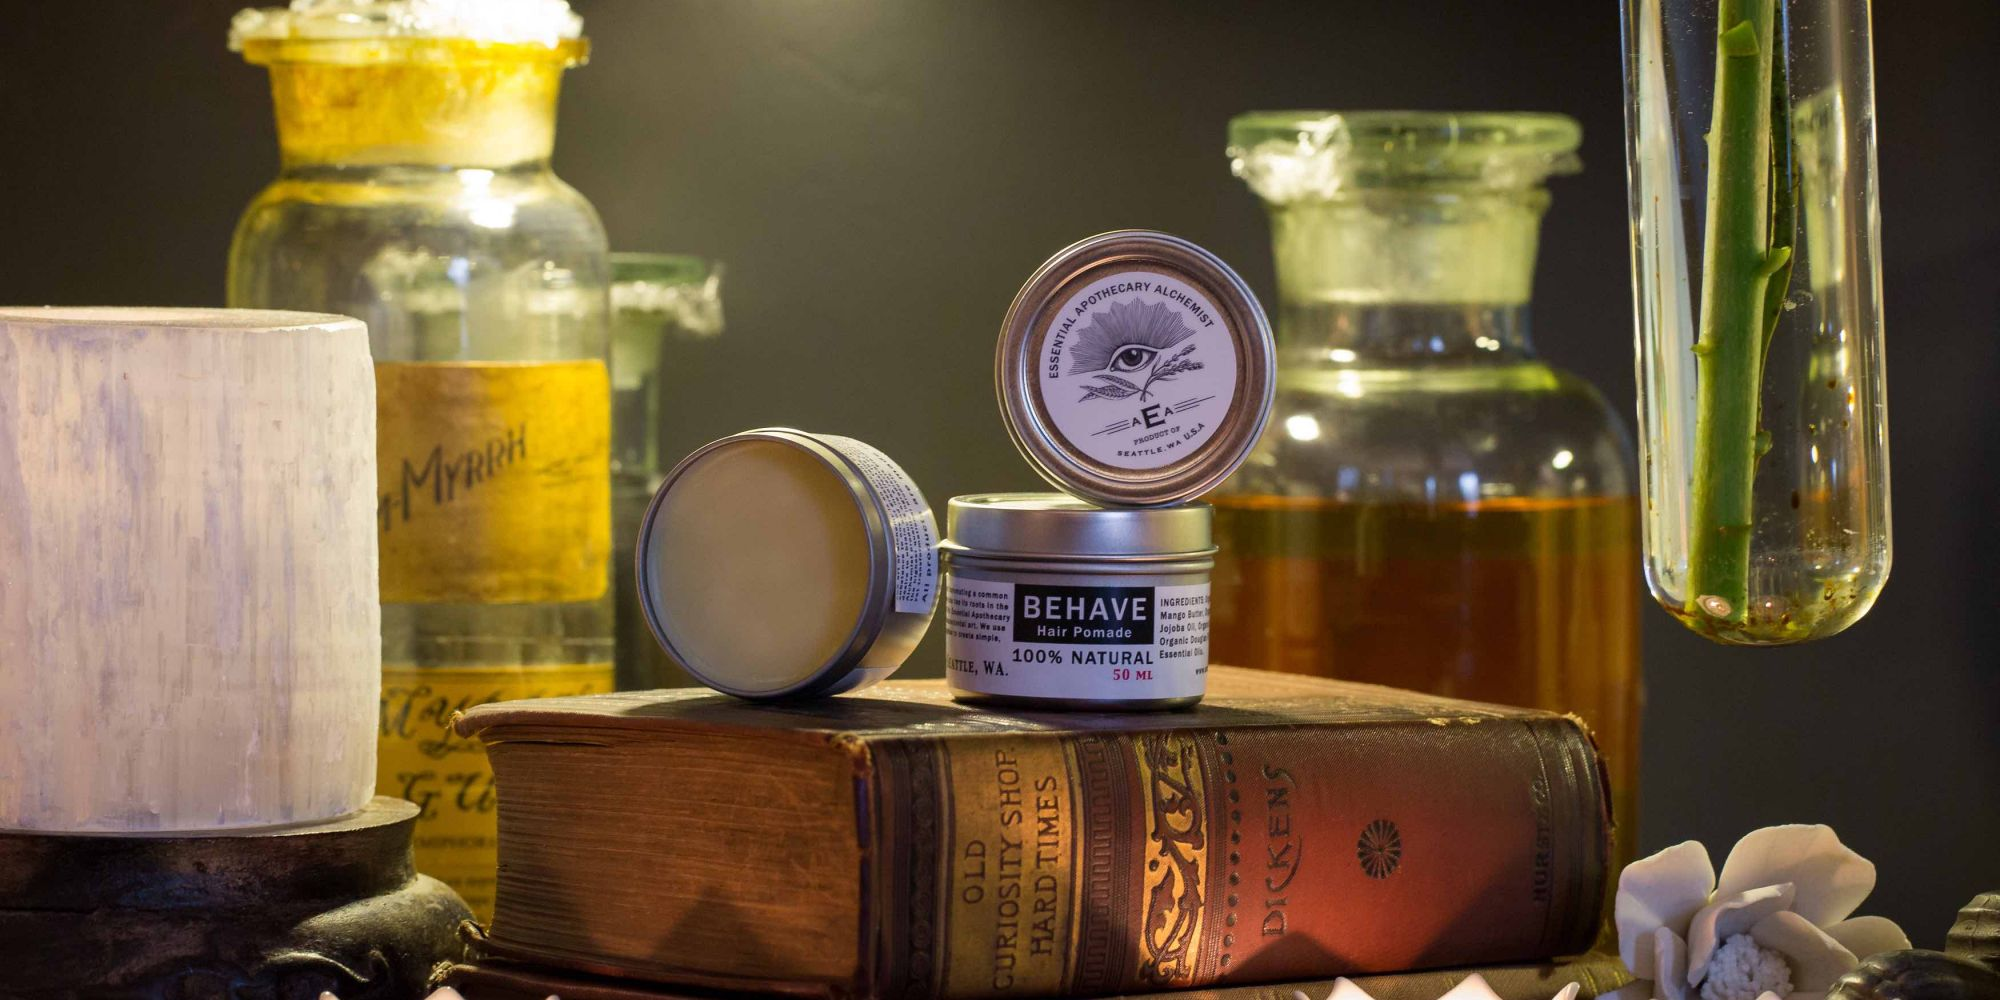 Essential Apothecary Alchemist Showcases Carefully Crafted Products In A Small Seattle Shop